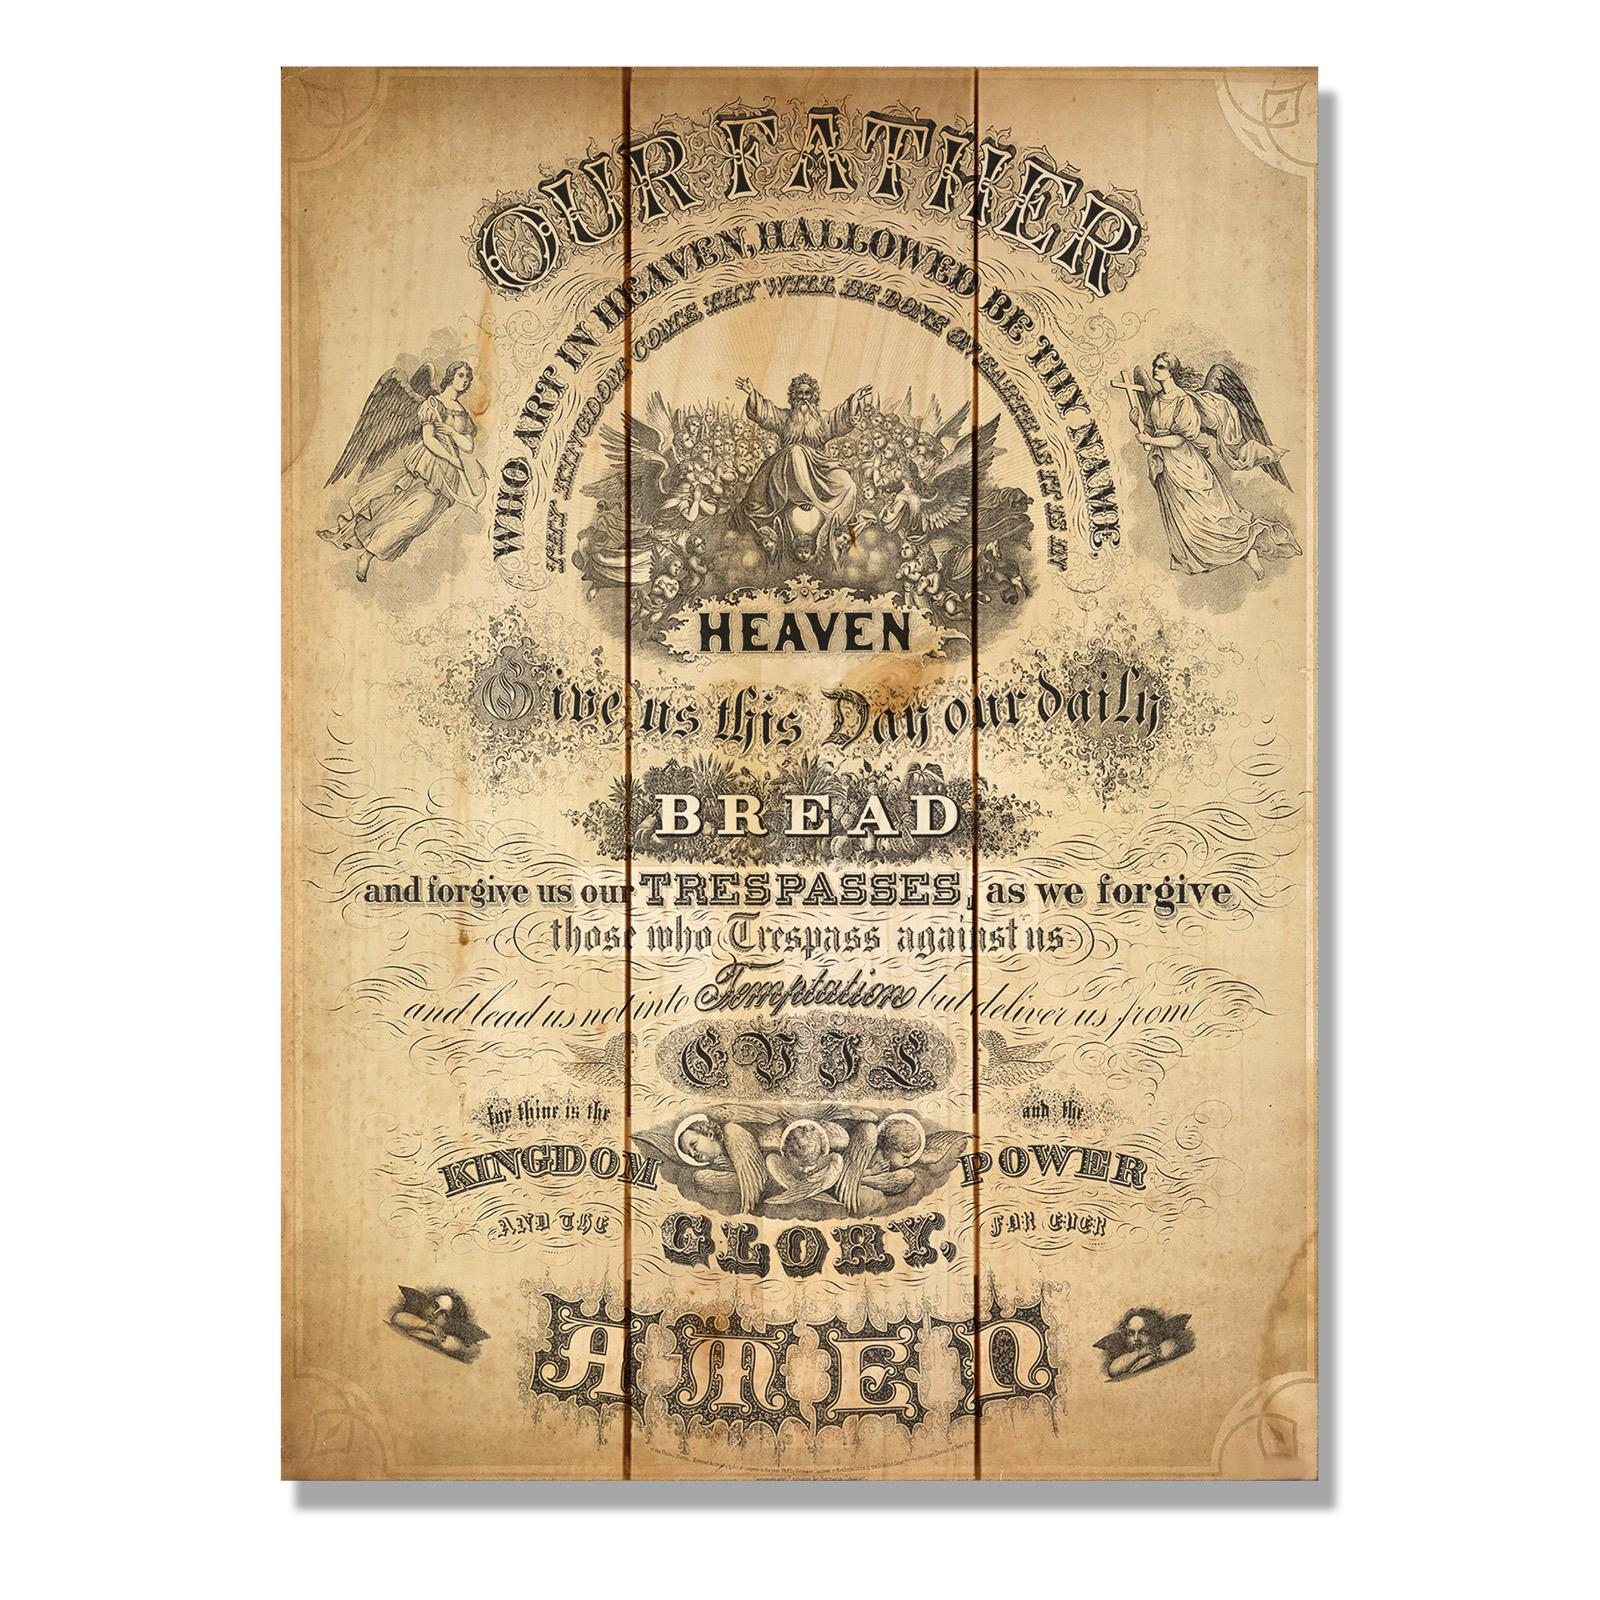 Lords prayer wall art | Wall Decor & Visual Arts | Compare Prices at ...